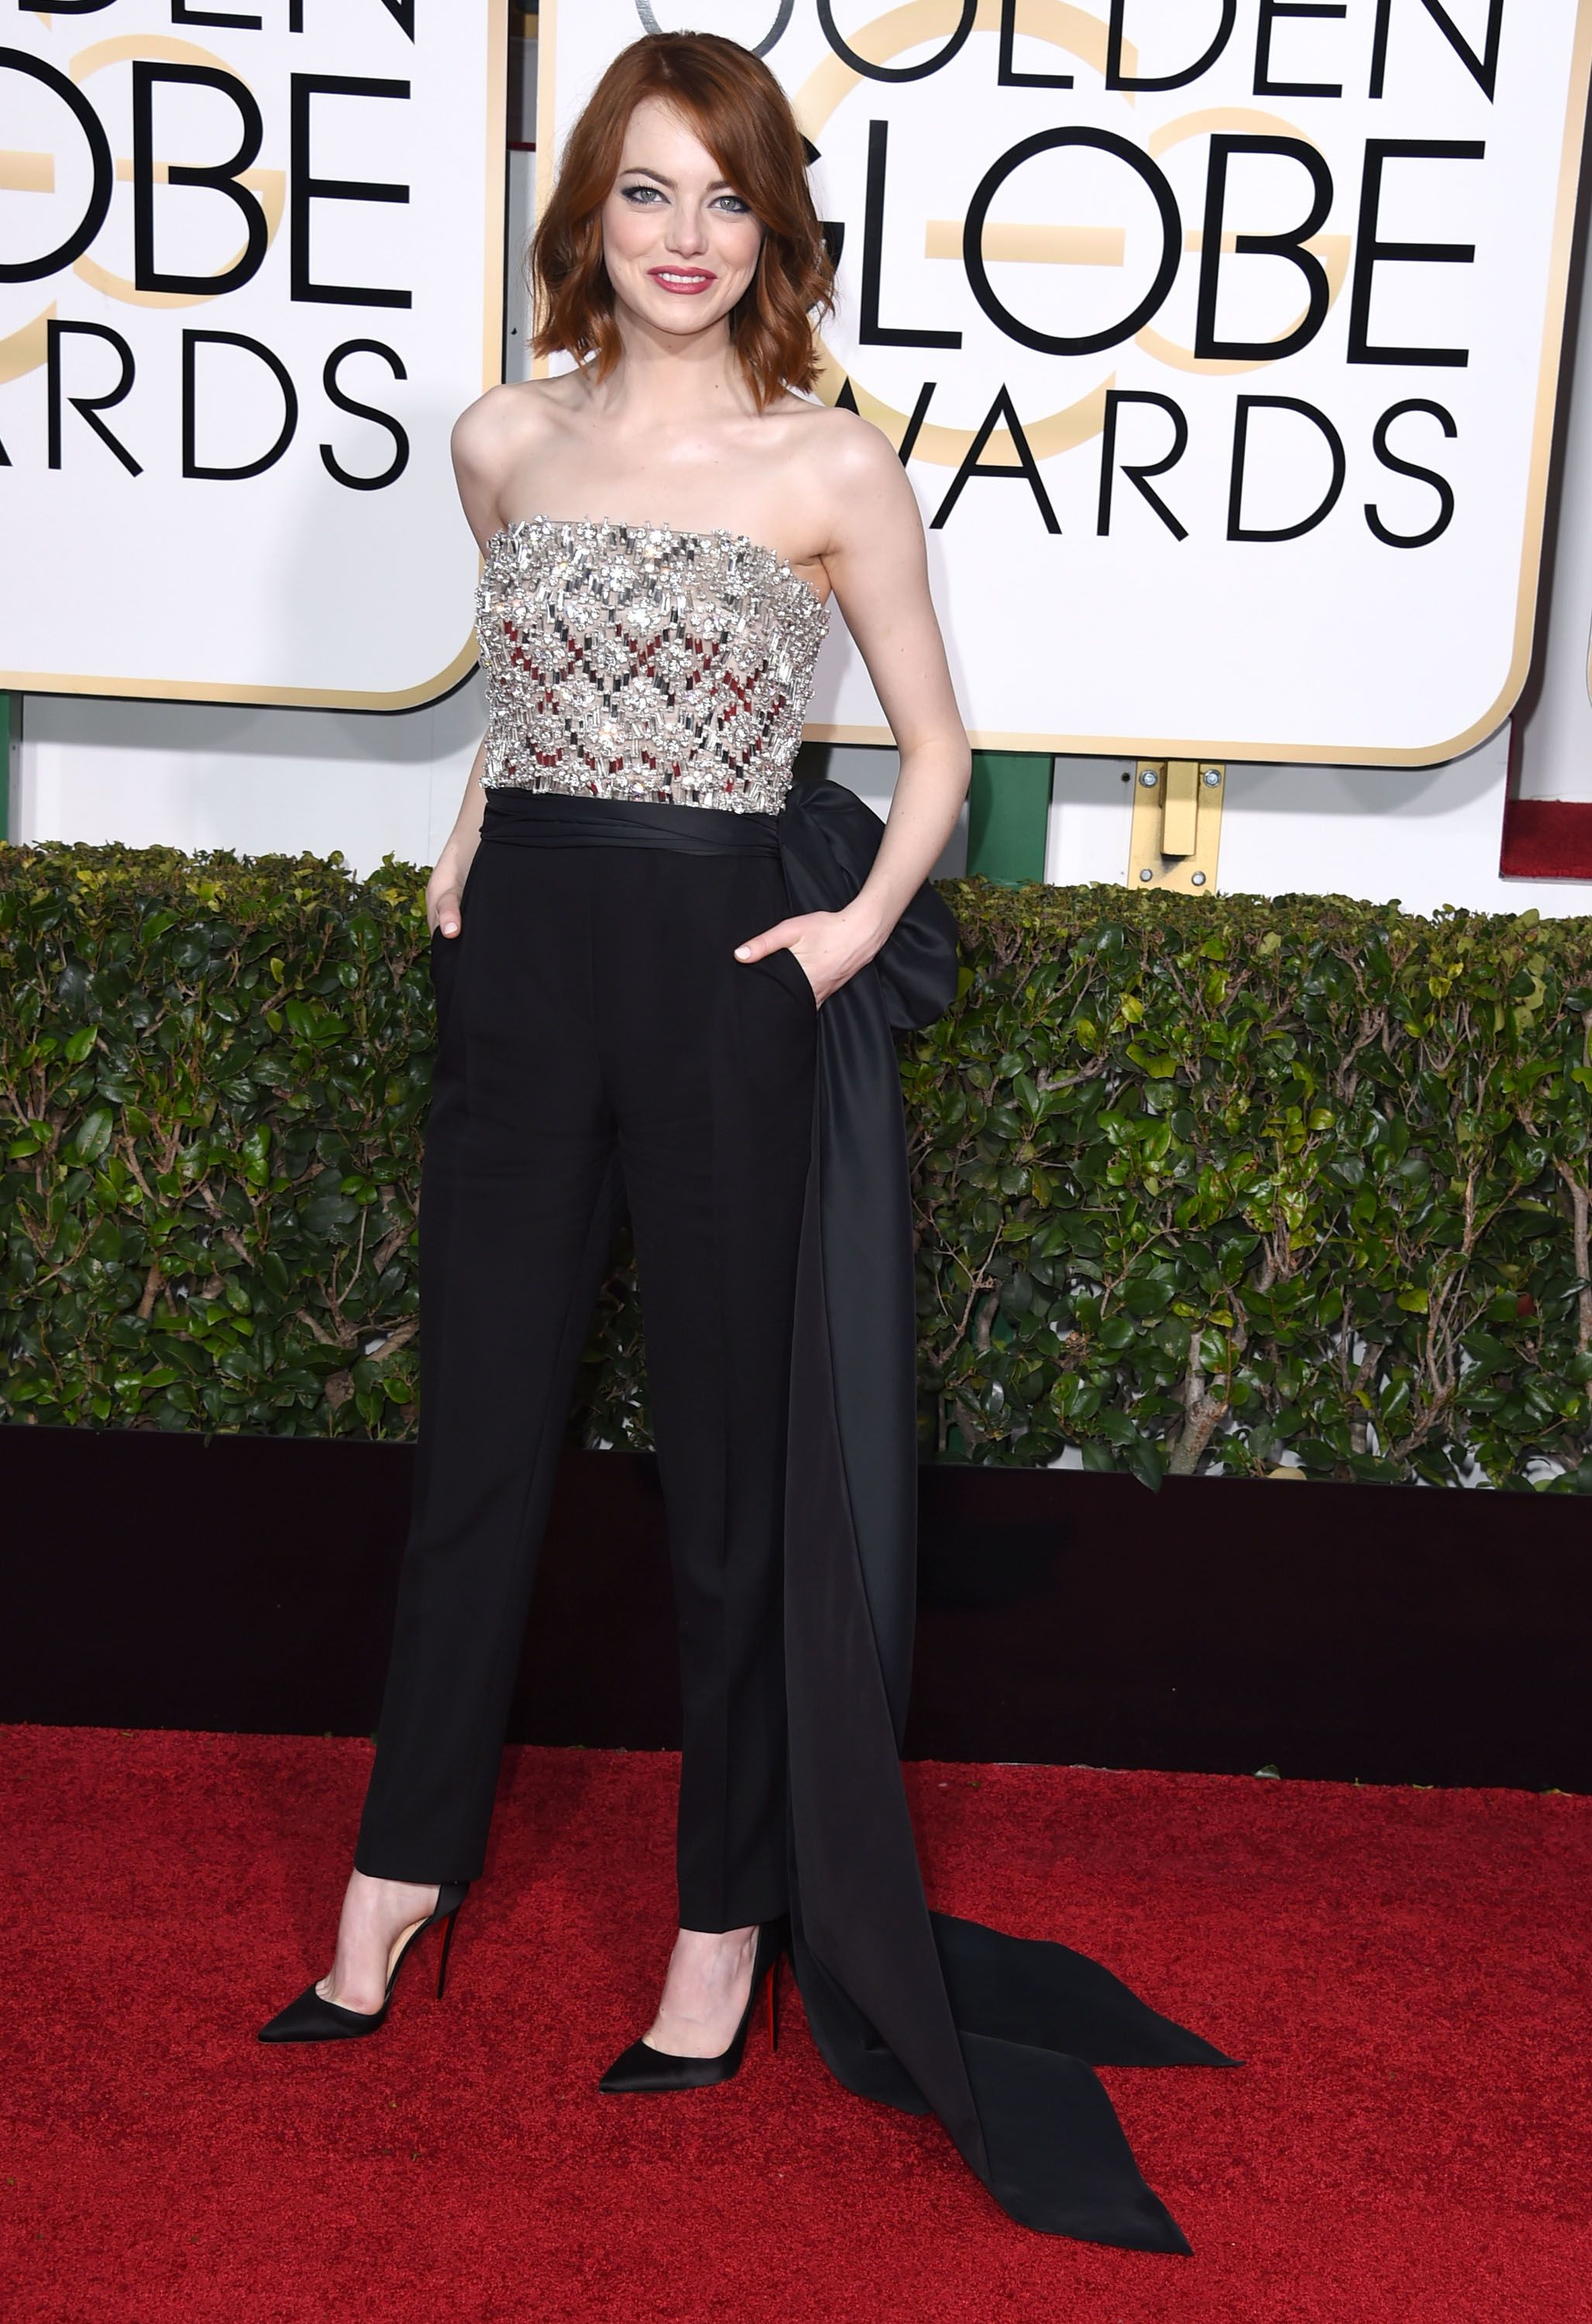 The most jawdropping gowns to ever hit the golden globes red